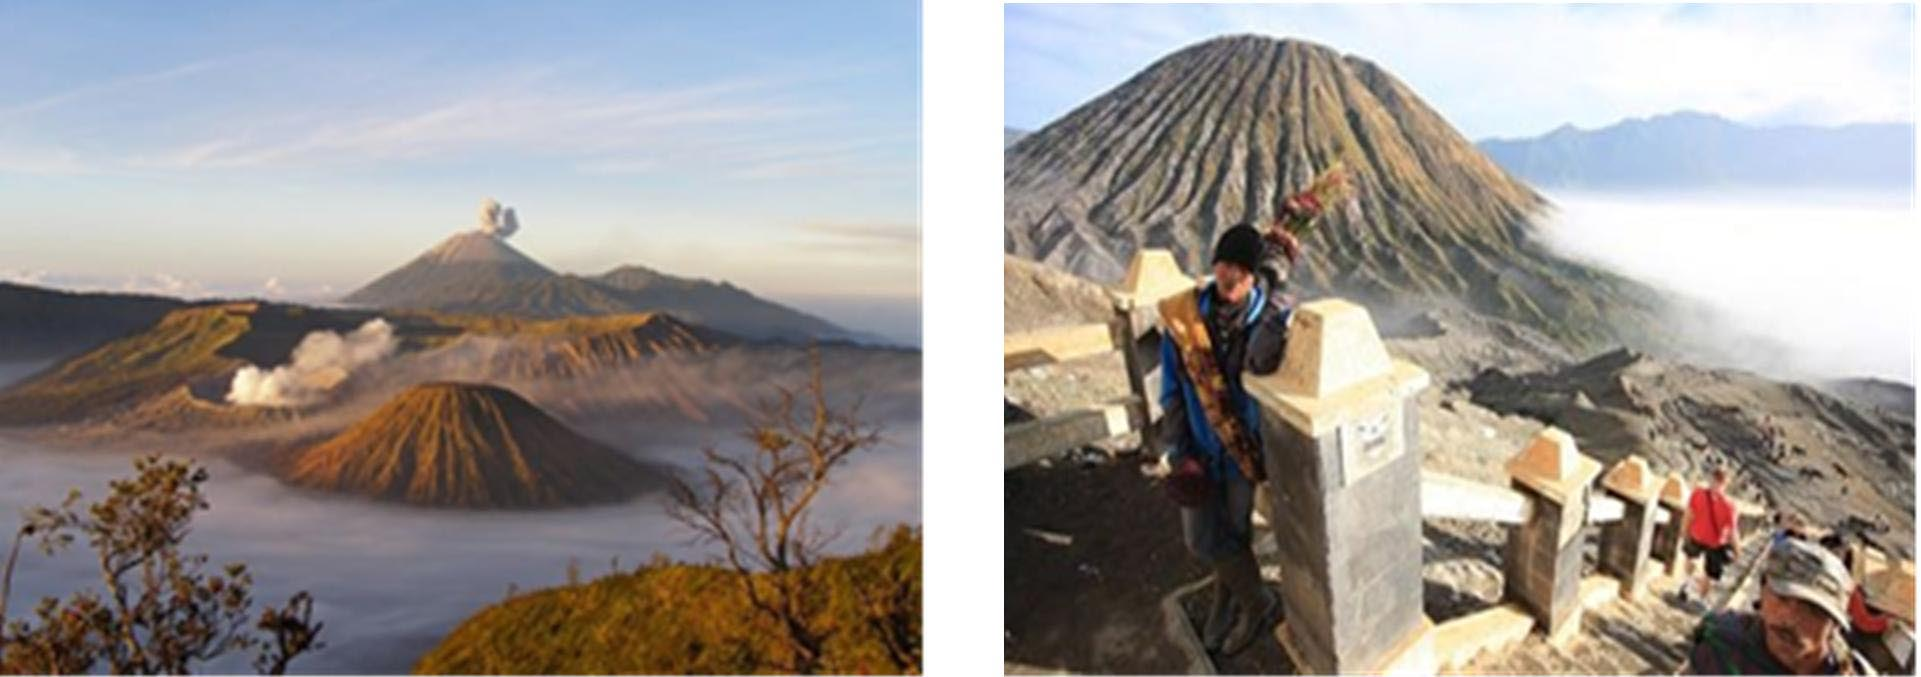 Java Tour (Bromo - Ljen) | Gilita - Gili Travel Agency Indonesia